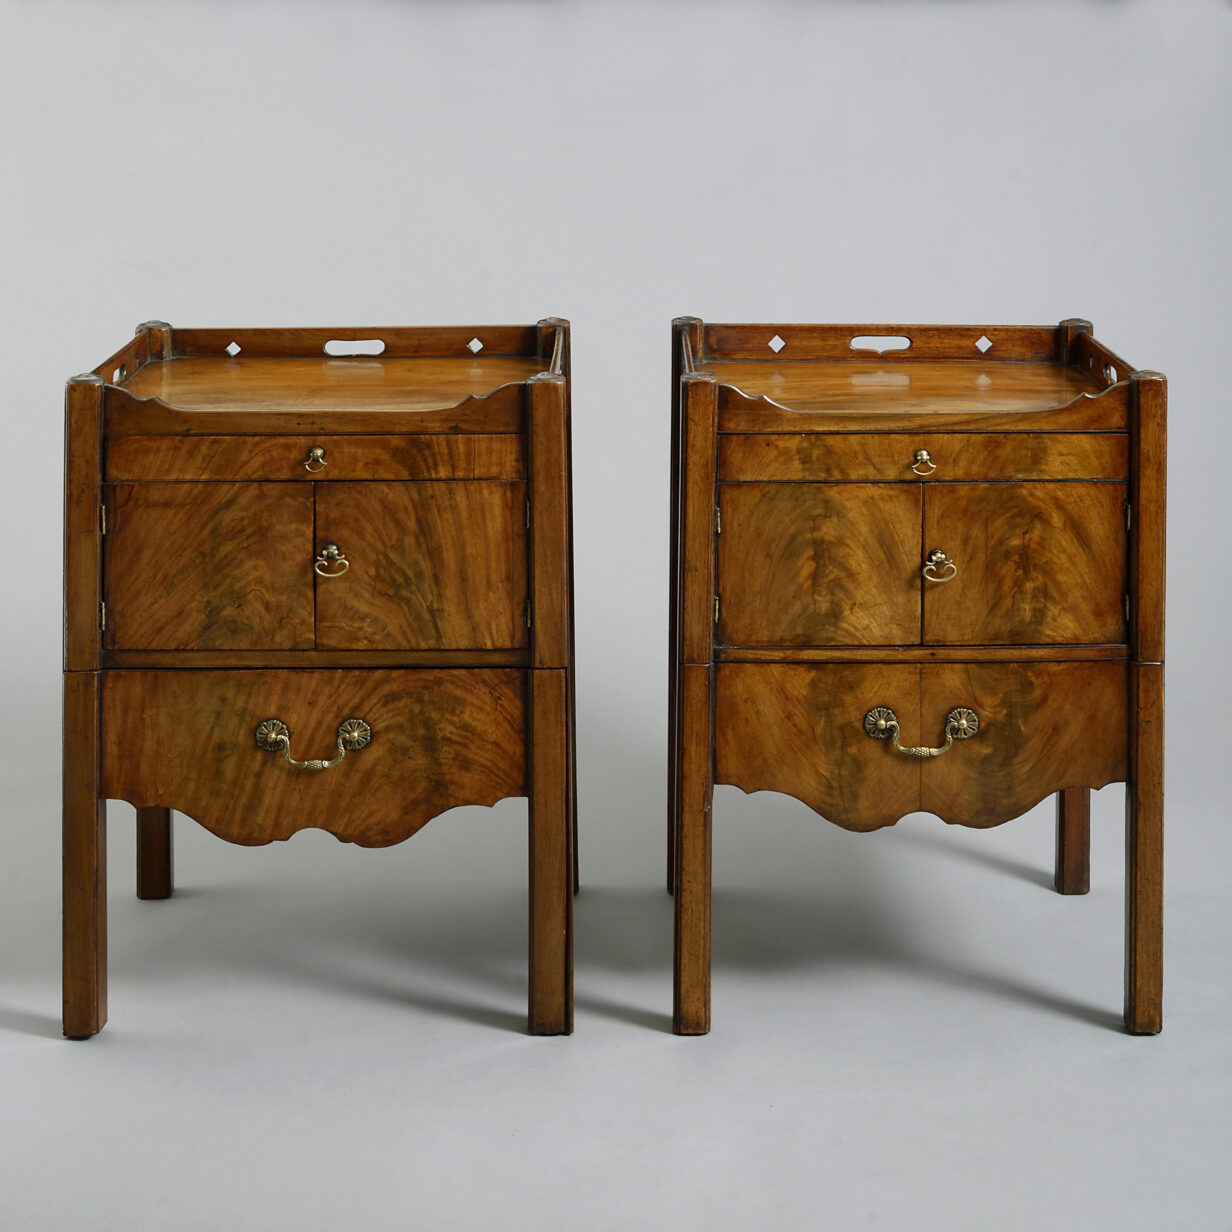 Pair of George III Period Commode